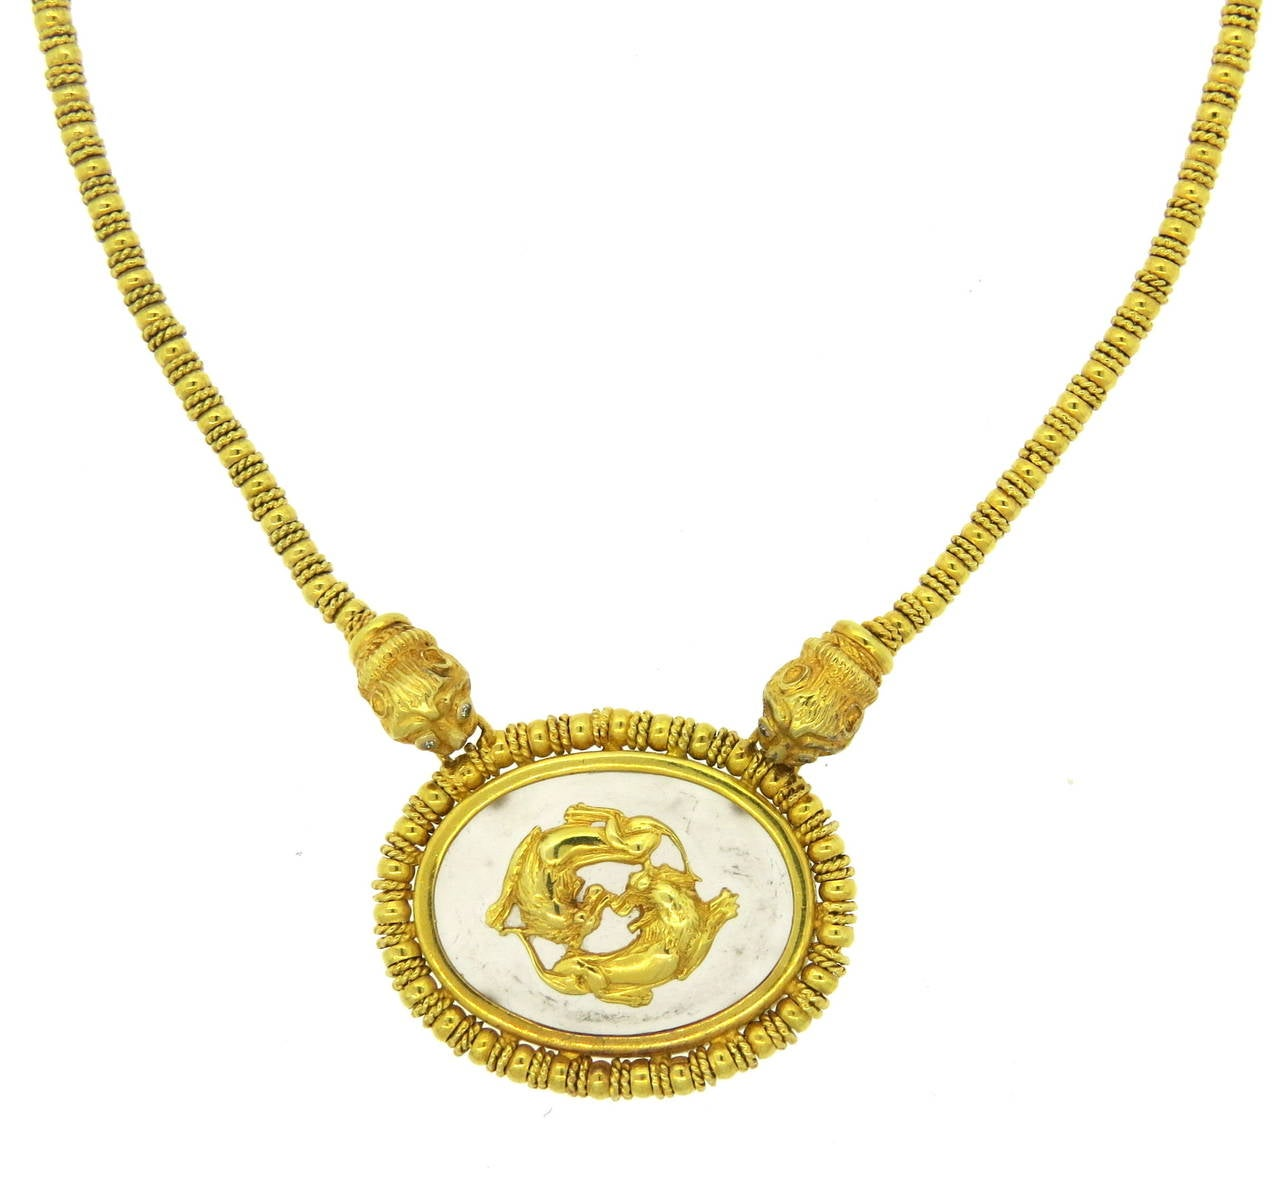 18k gold necklace by Ilias Lalaounis, featuring frosted crystal pendant and Chimera accents with diamond eyes. Necklace is 16 1/2